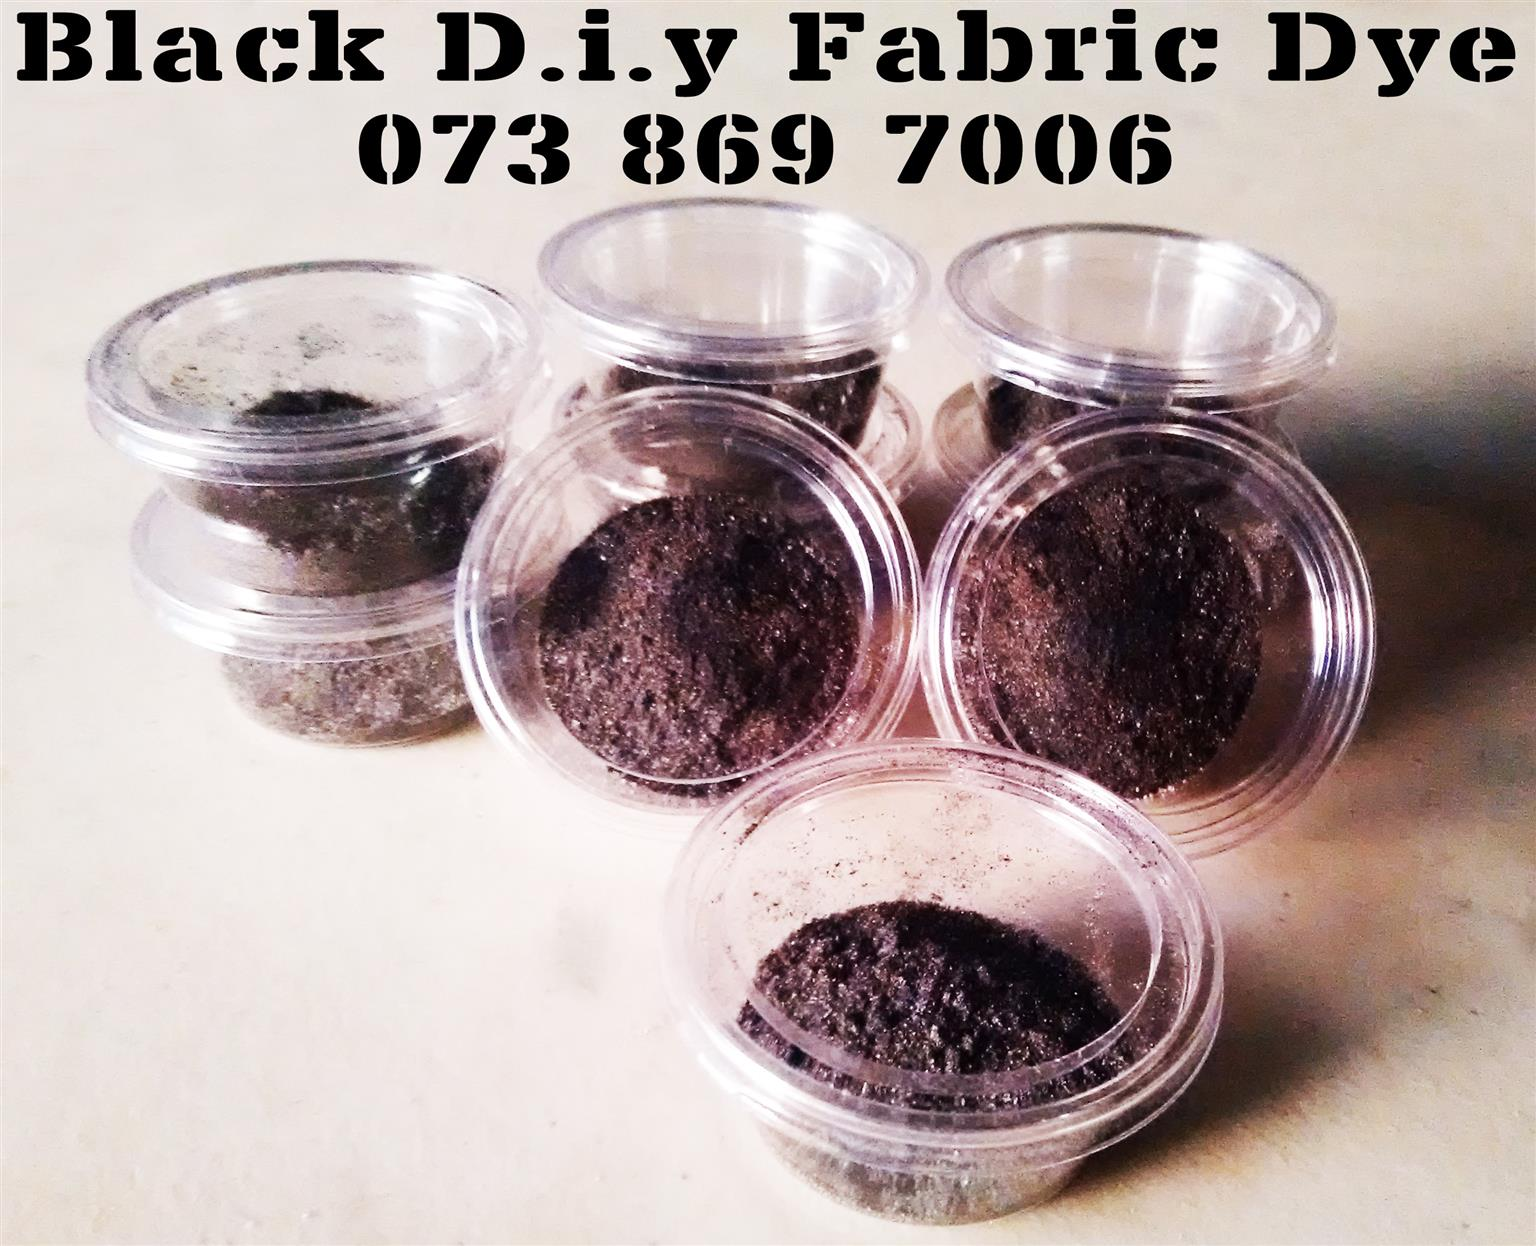 CLOTHES FABRIC DYE for SALE